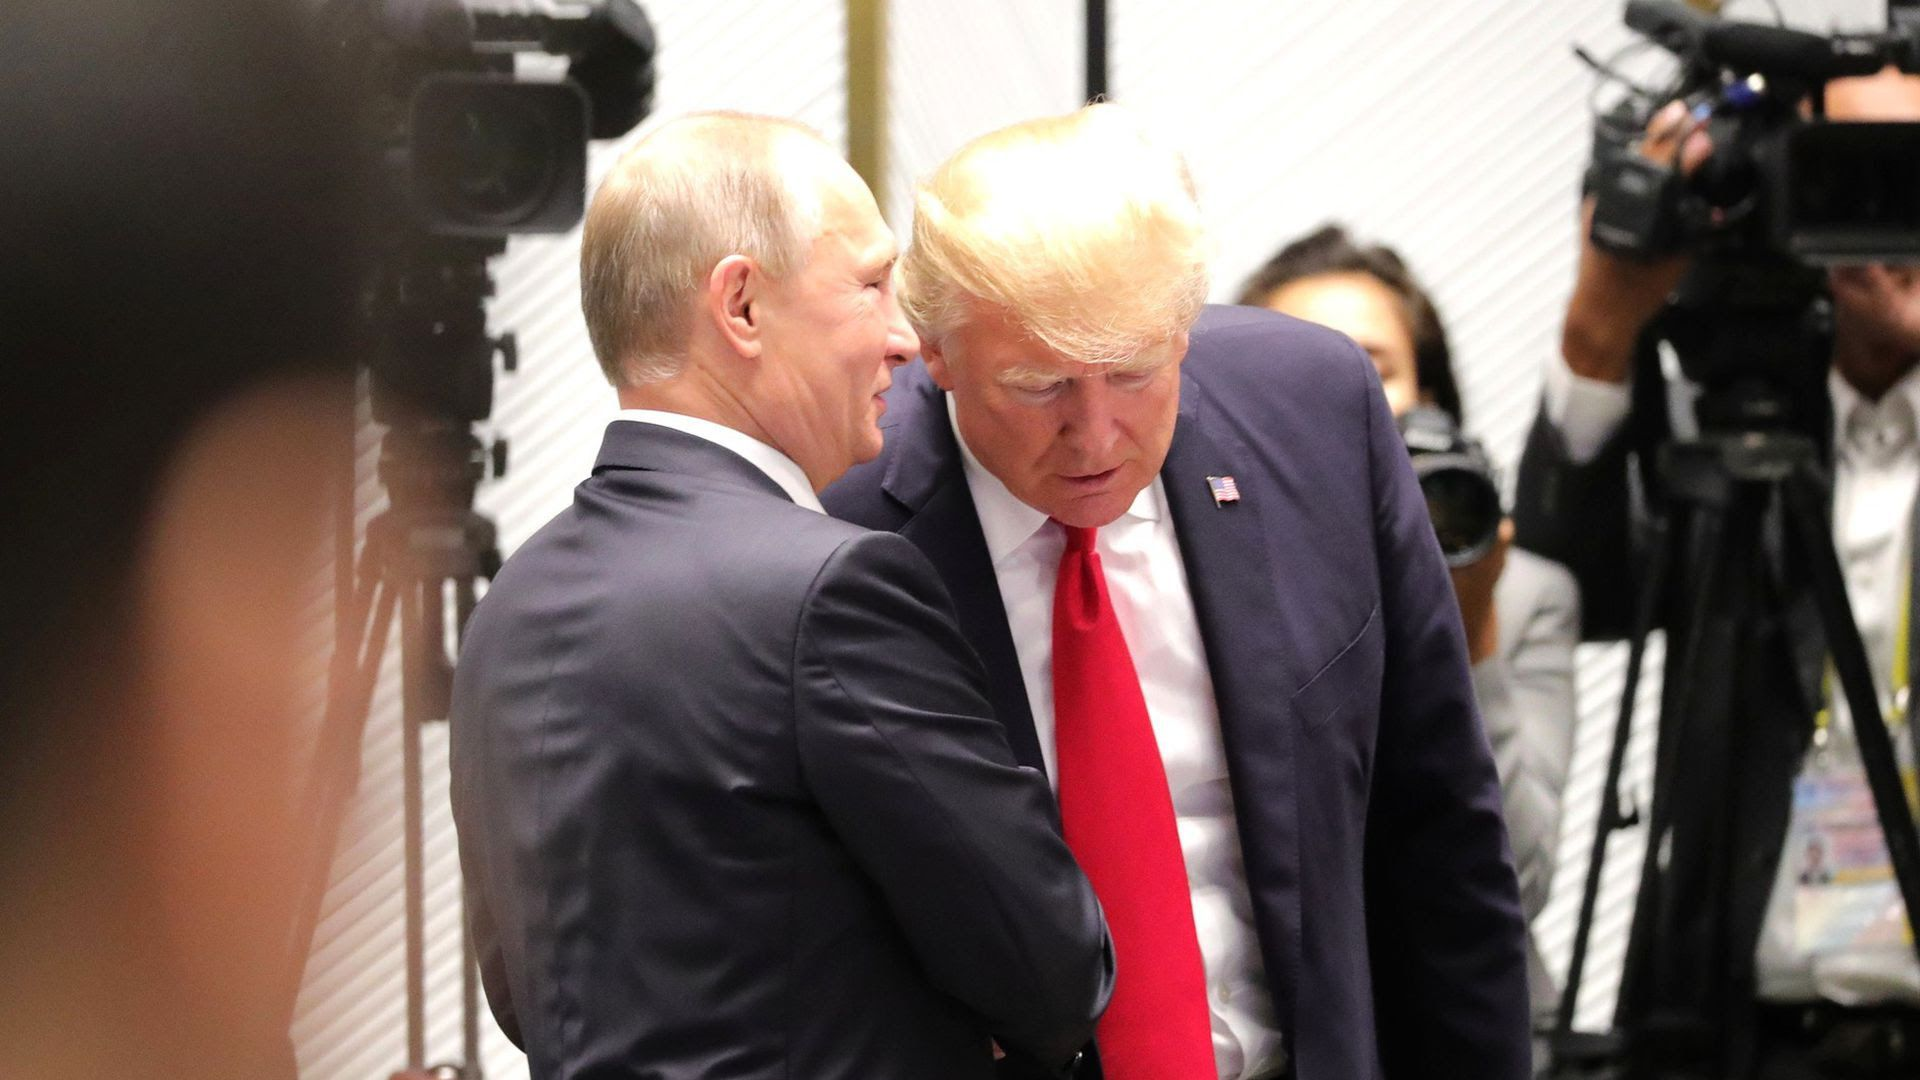 Trump leans over to hear Putin talk in his ear